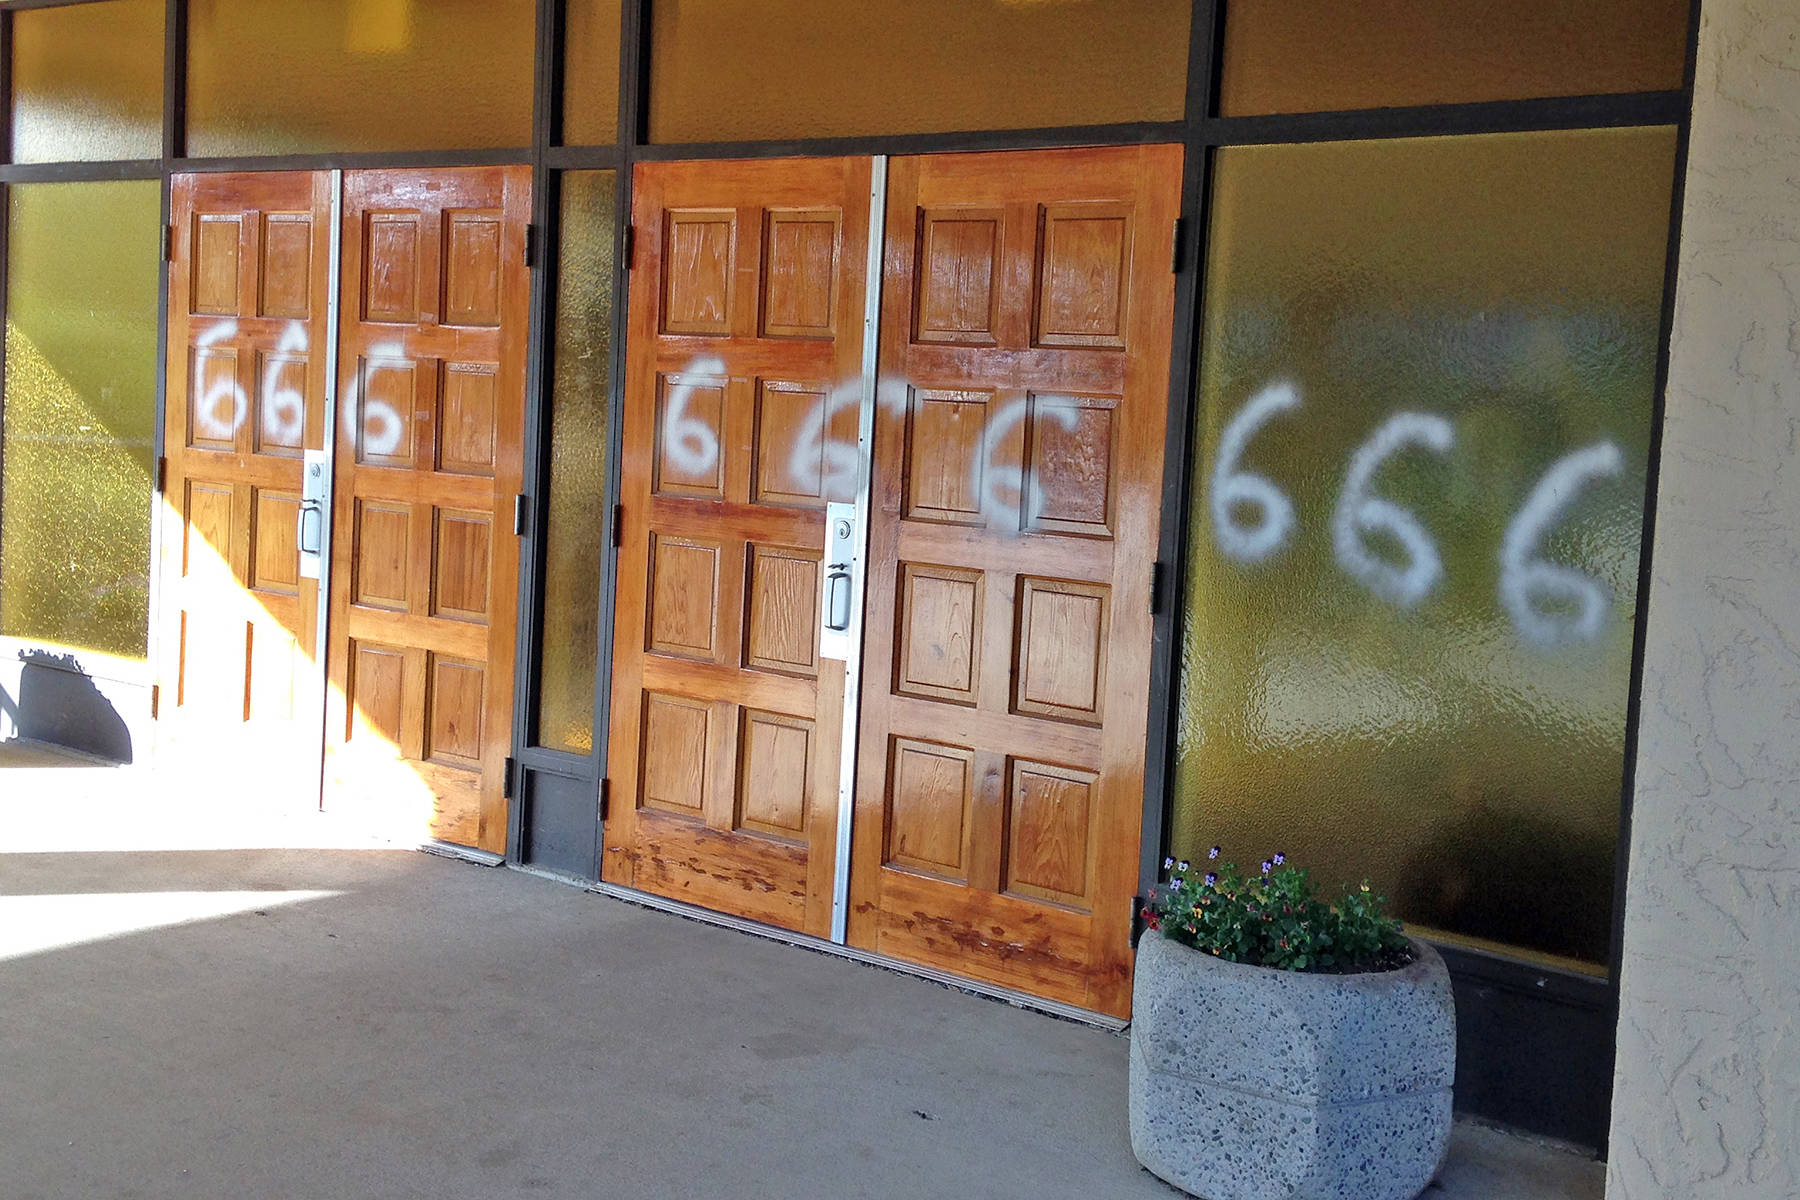 Mission's St. Joseph's Catholic Parish on 7th Avenue was struck by vandals on the weekend. Someone painted ^666 and Judge Me all over the church. / Submitted Photos